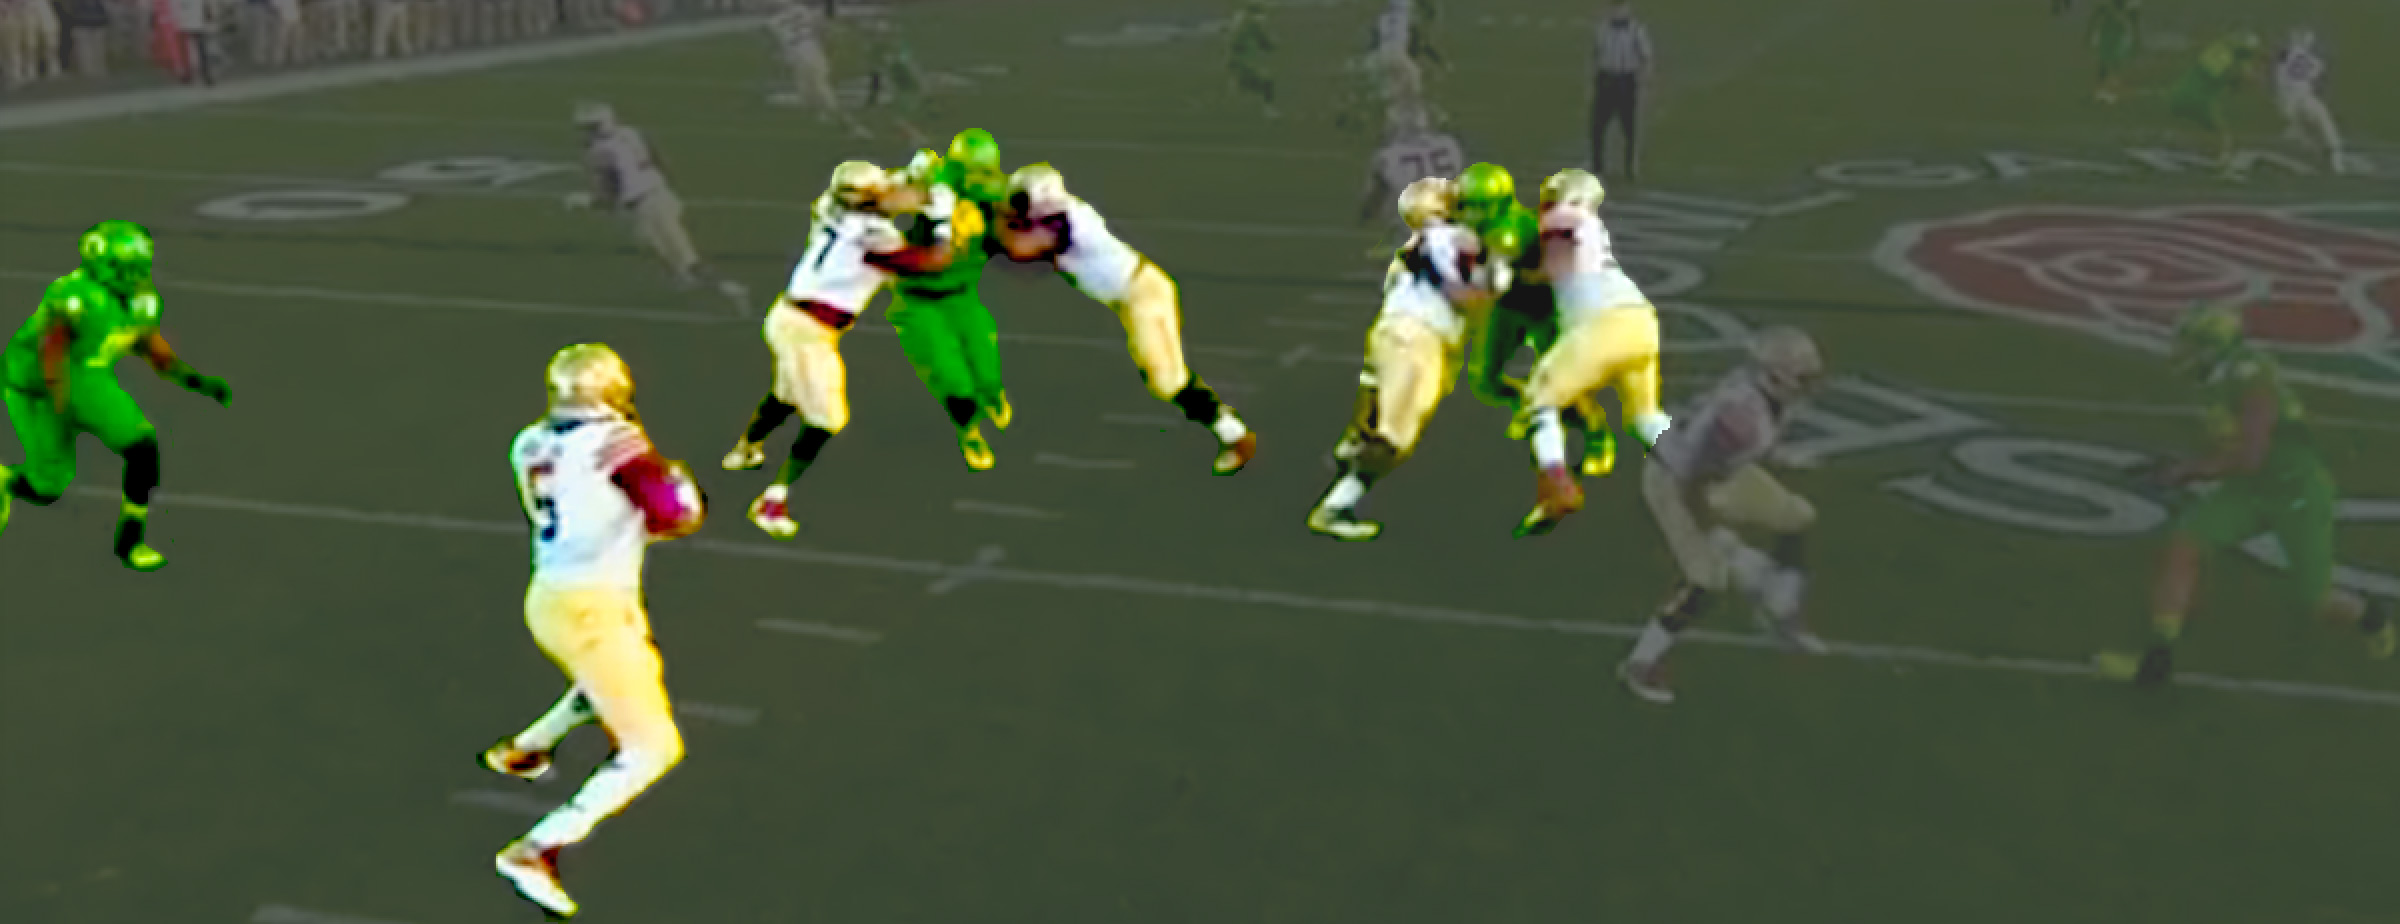 oregon-fsu-pass-rush-screenshot